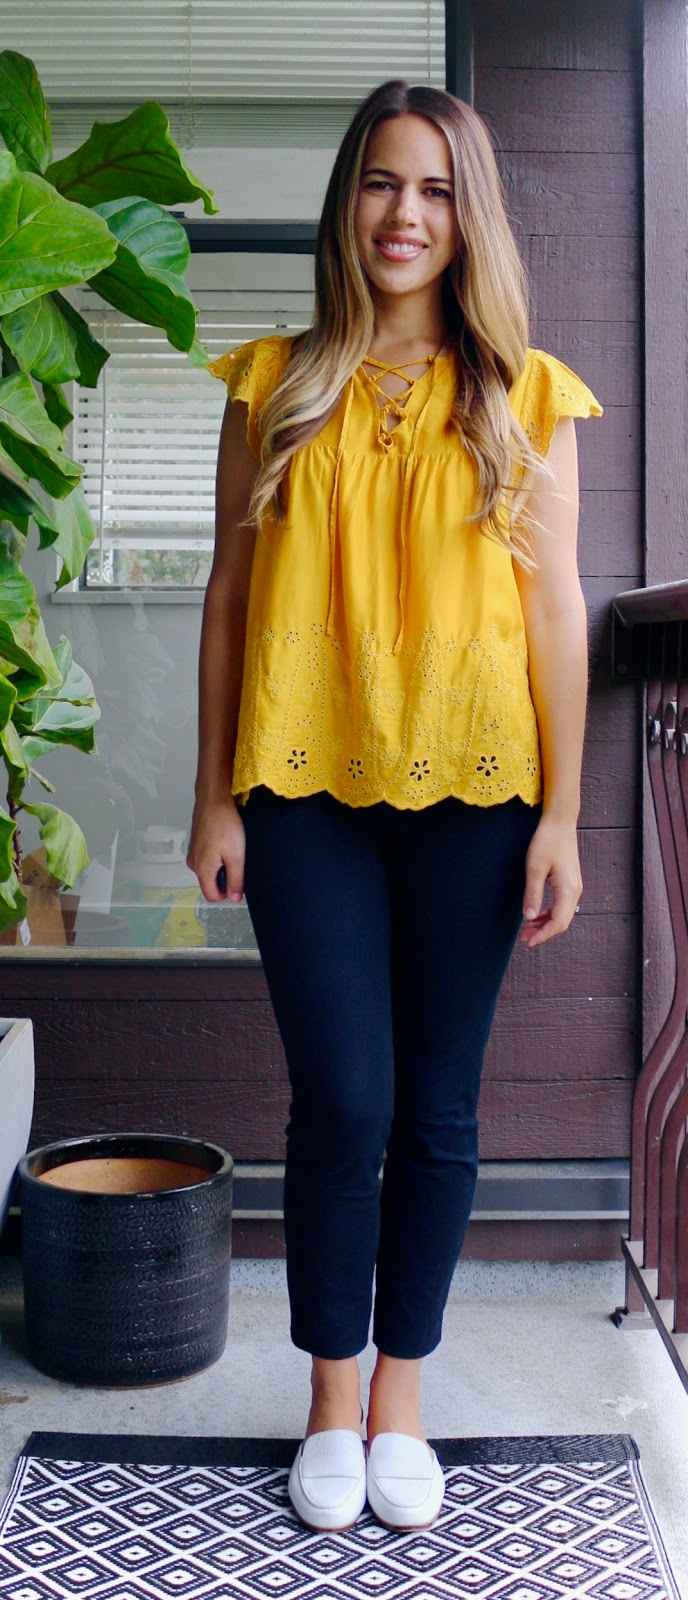 Jules in Flats - Yellow Eyelet Top